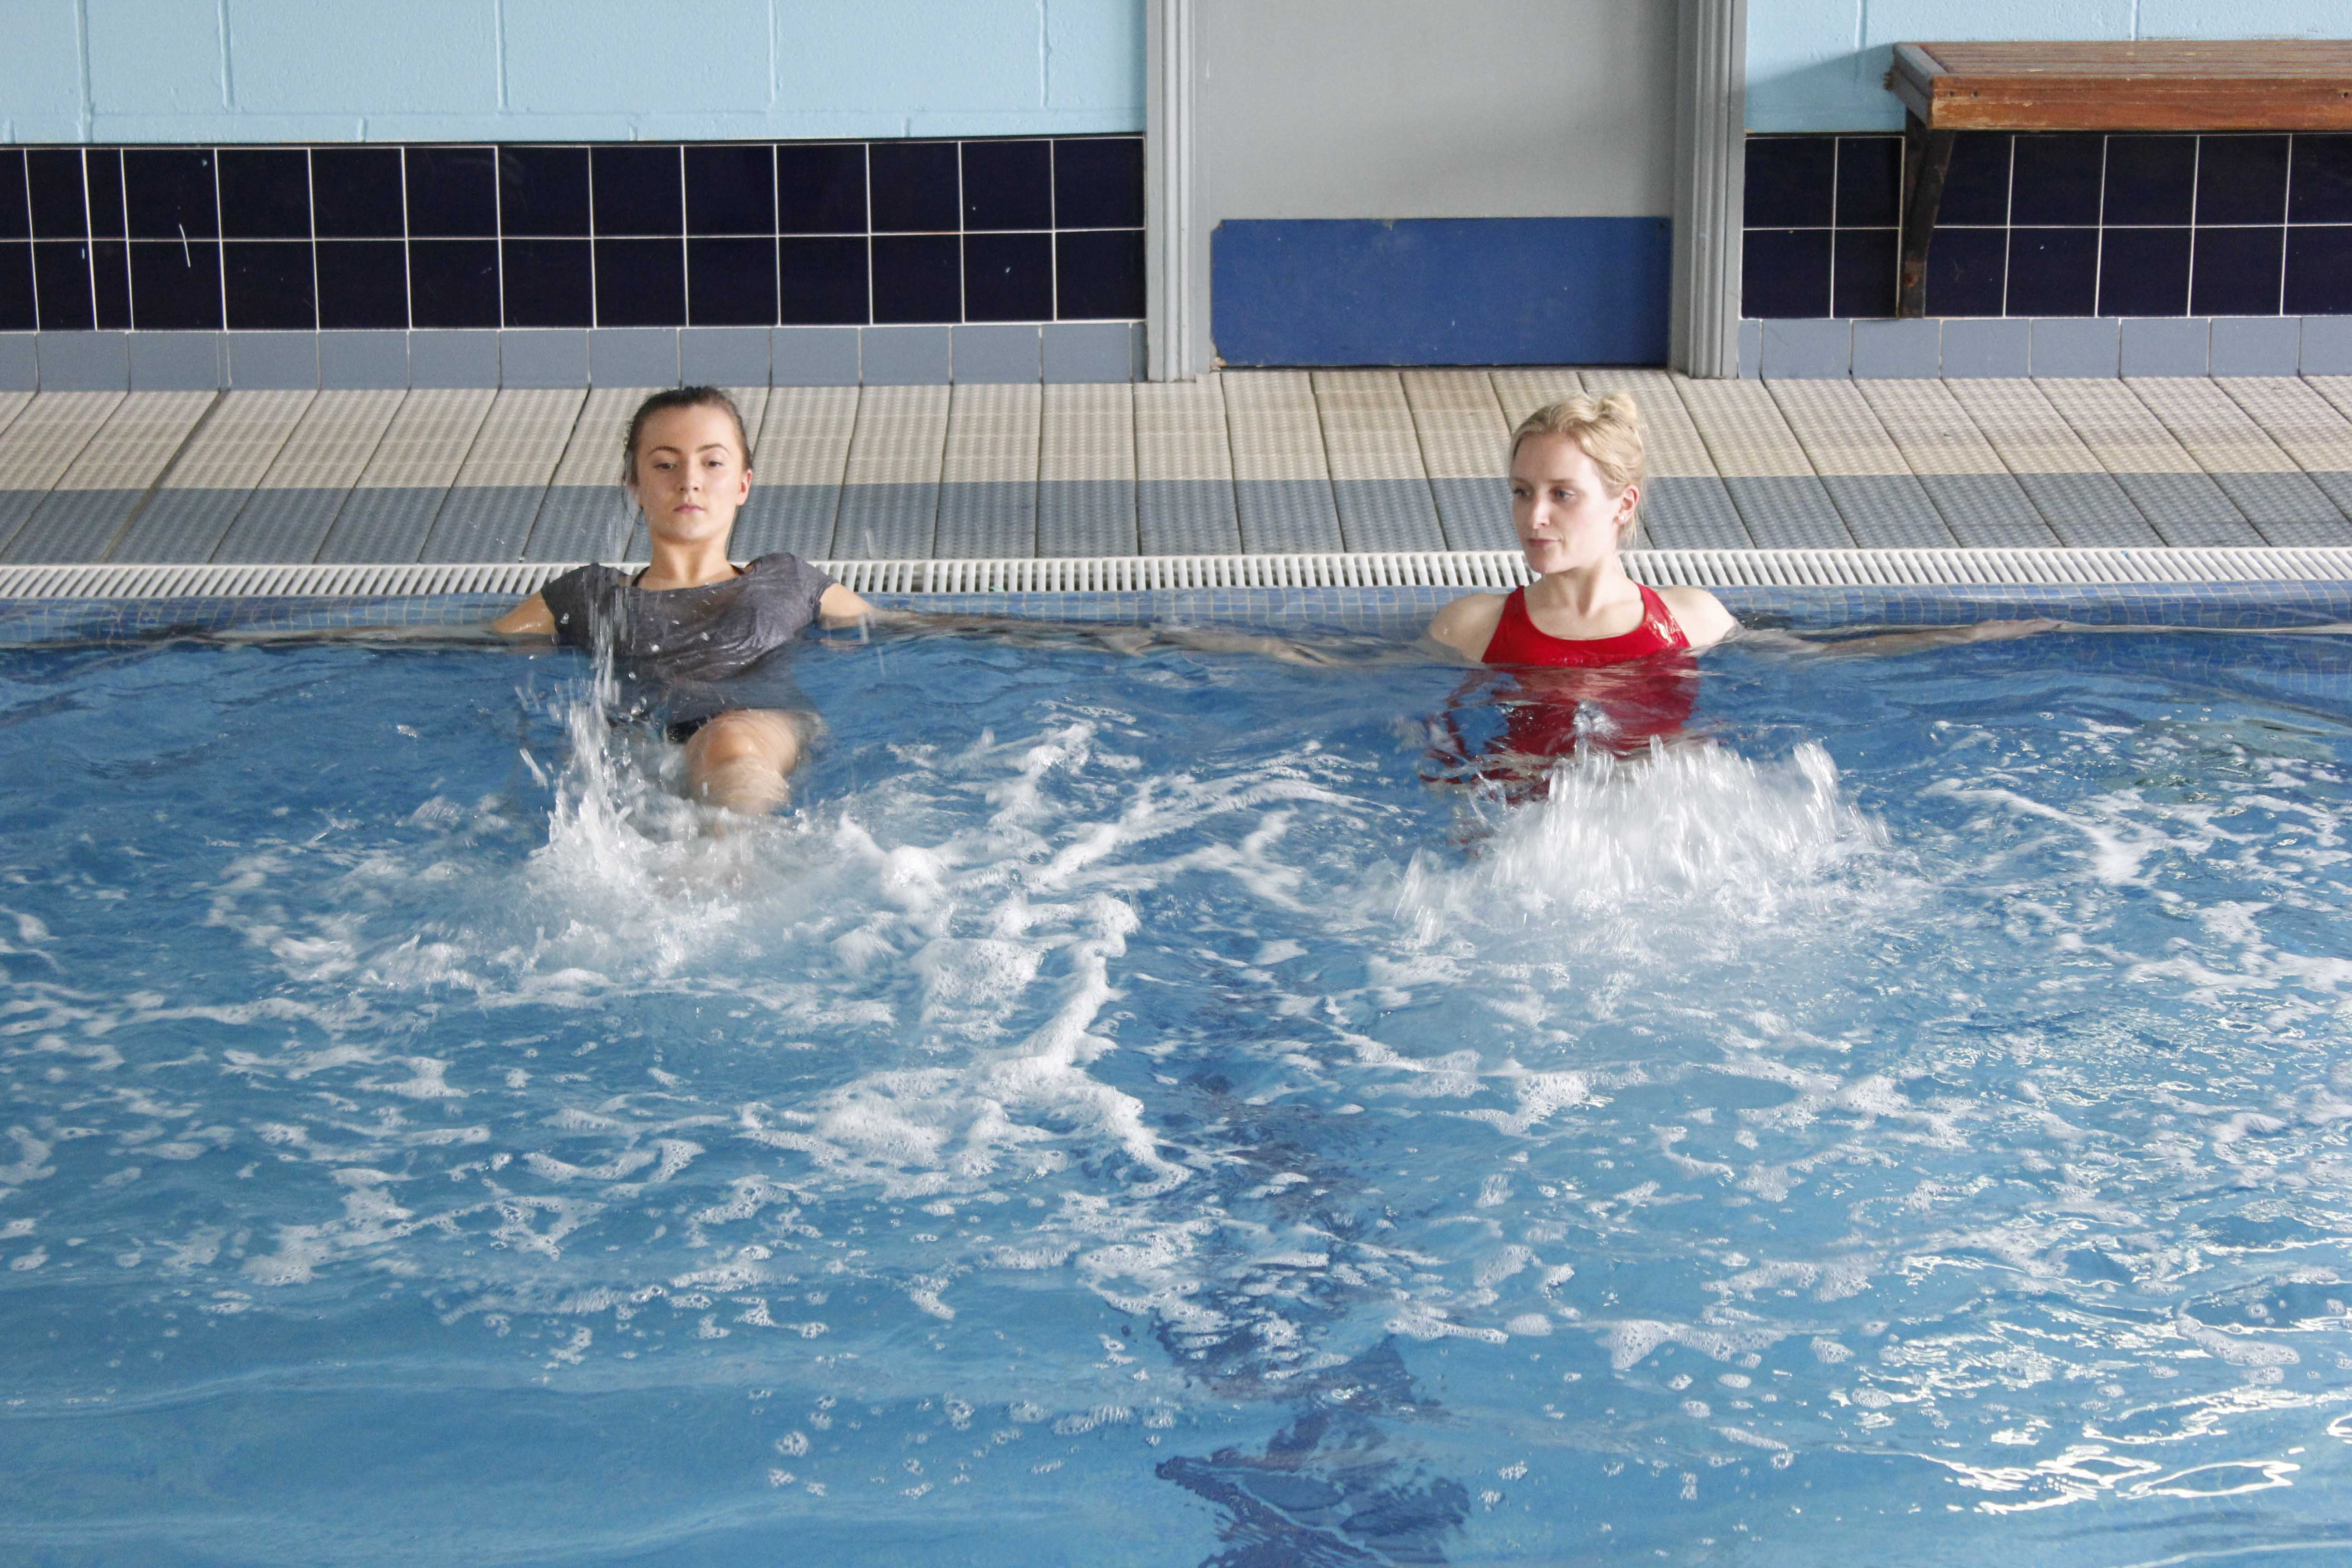 Your physiotherapy sessions will take place in specialised hydrotherapy pools